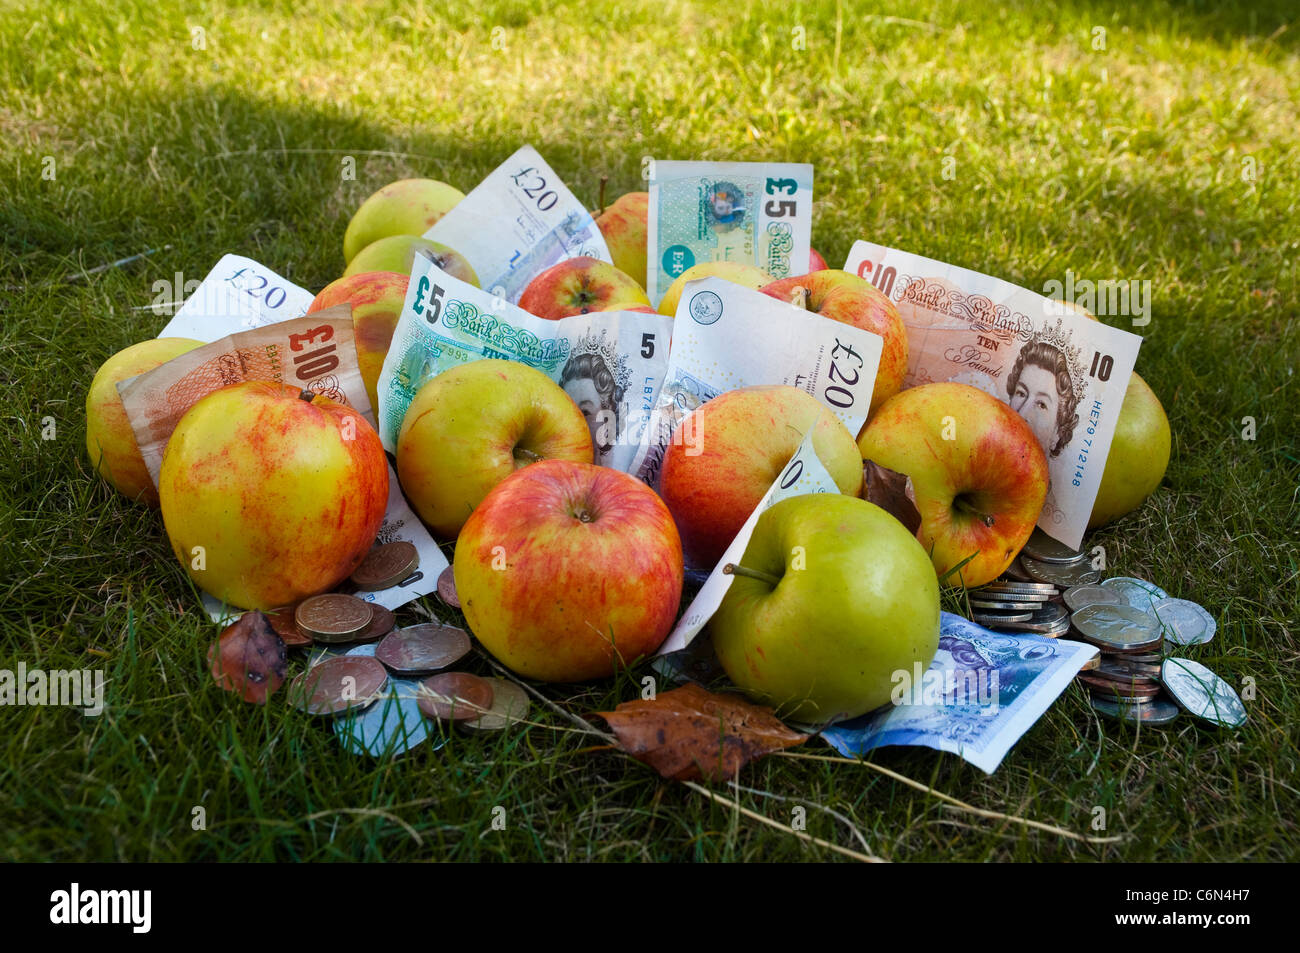 A windfall, money and apples  - unexpectedly in the money, with a cash bonus - to spend, save or invest. UK - Stock Image